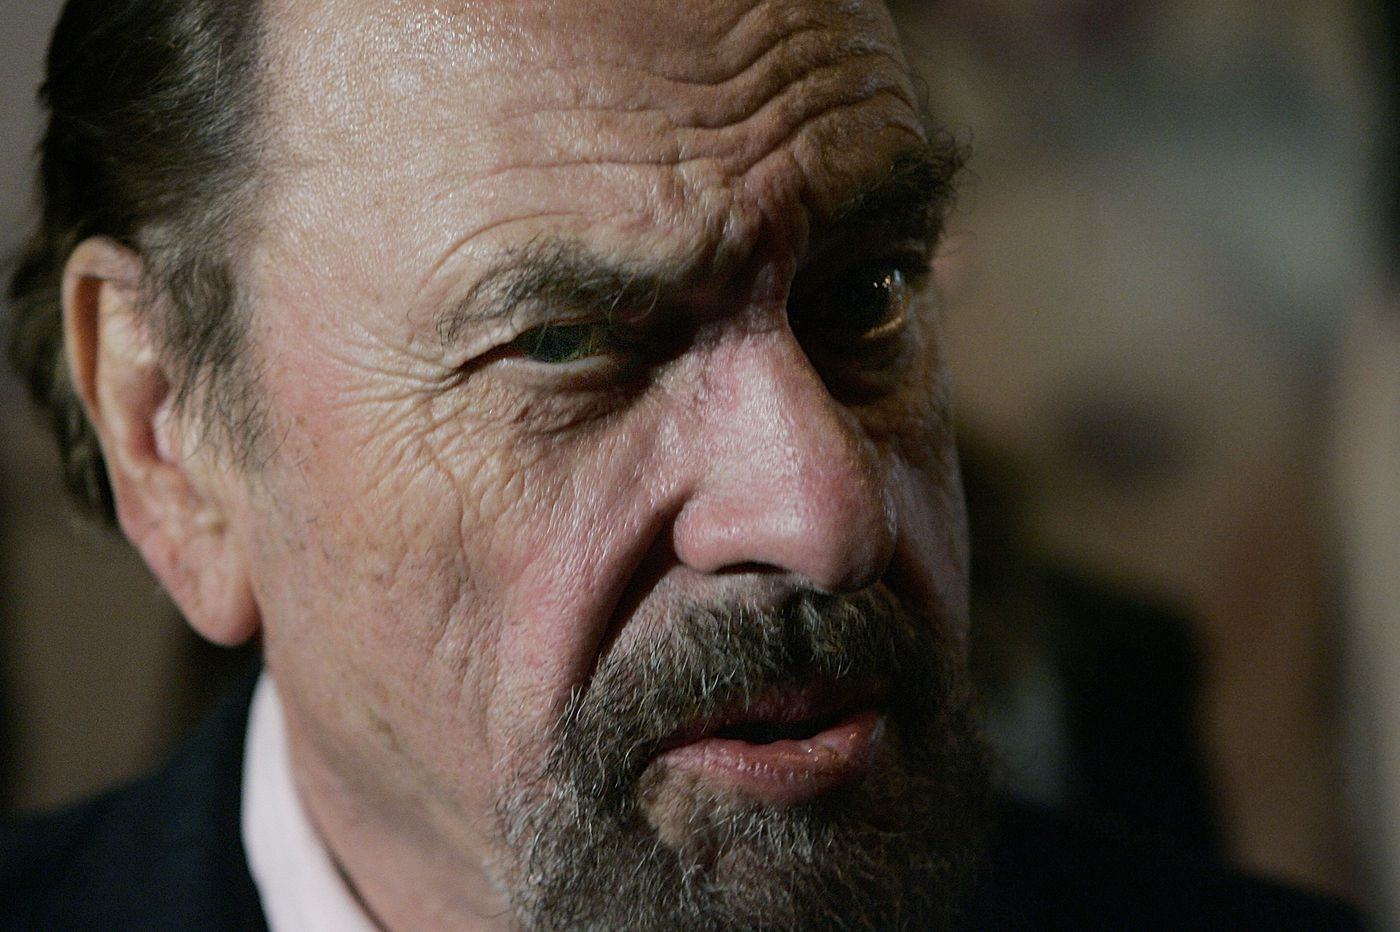 Emmy-winning actor Rip Torn has died at the age of 88